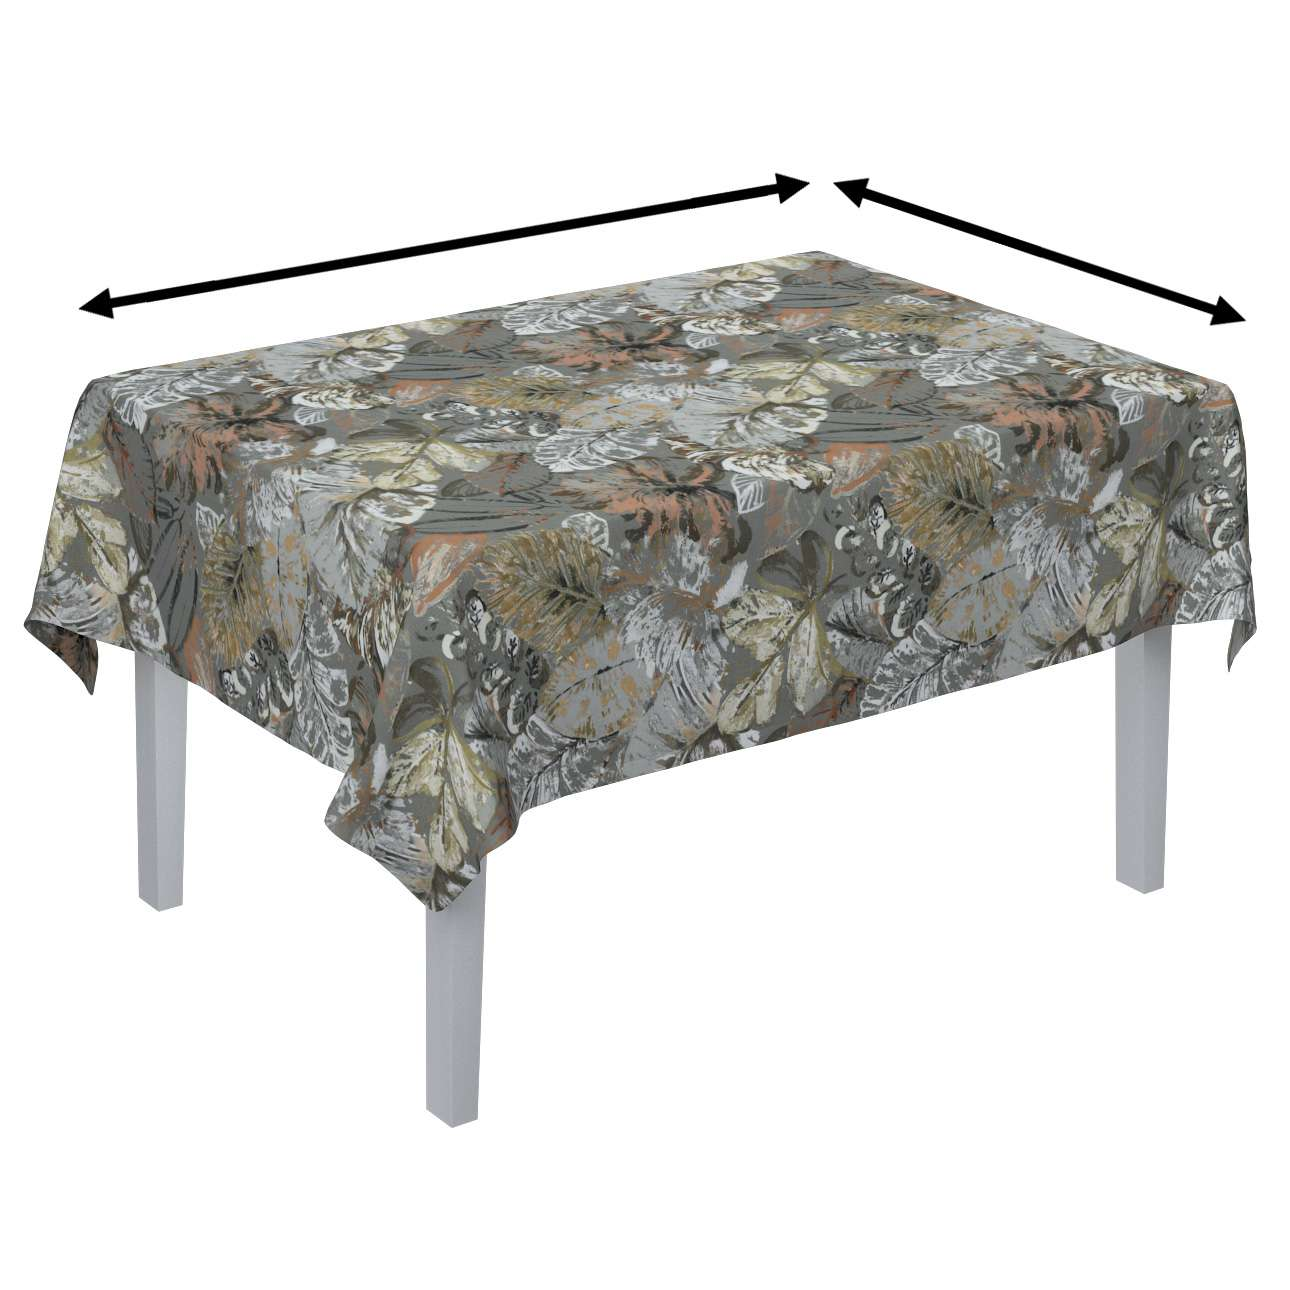 Rectangular tablecloth in collection Abigail, fabric: 143-19